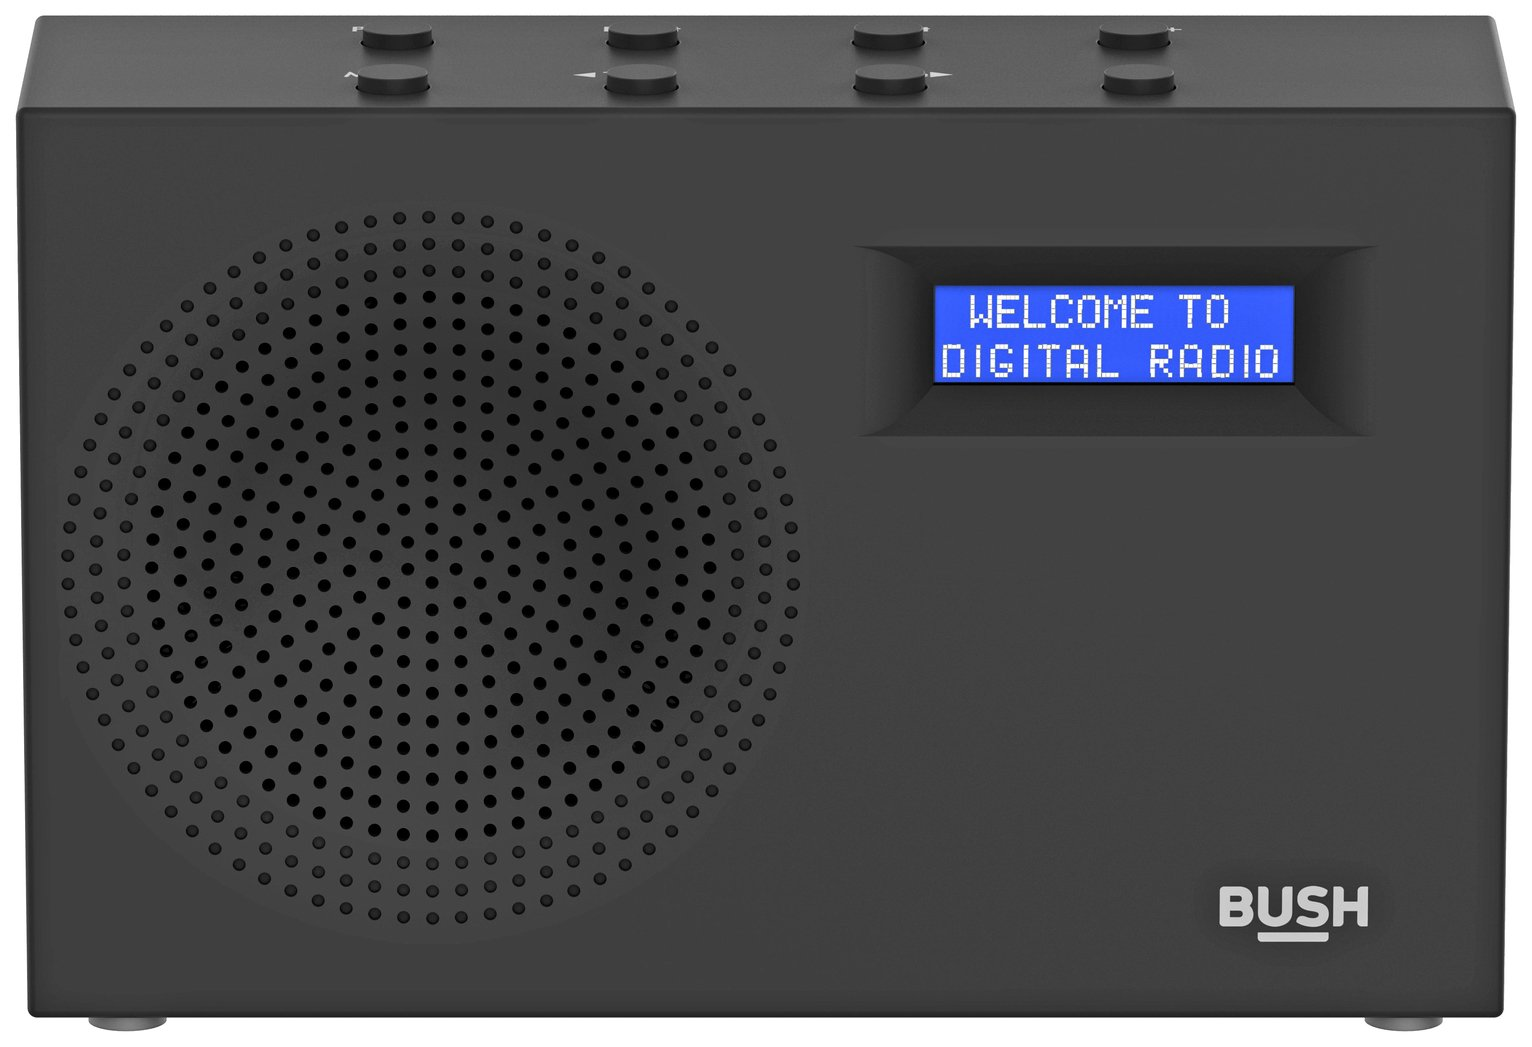 'Bush Dab / Fm Radio - Black